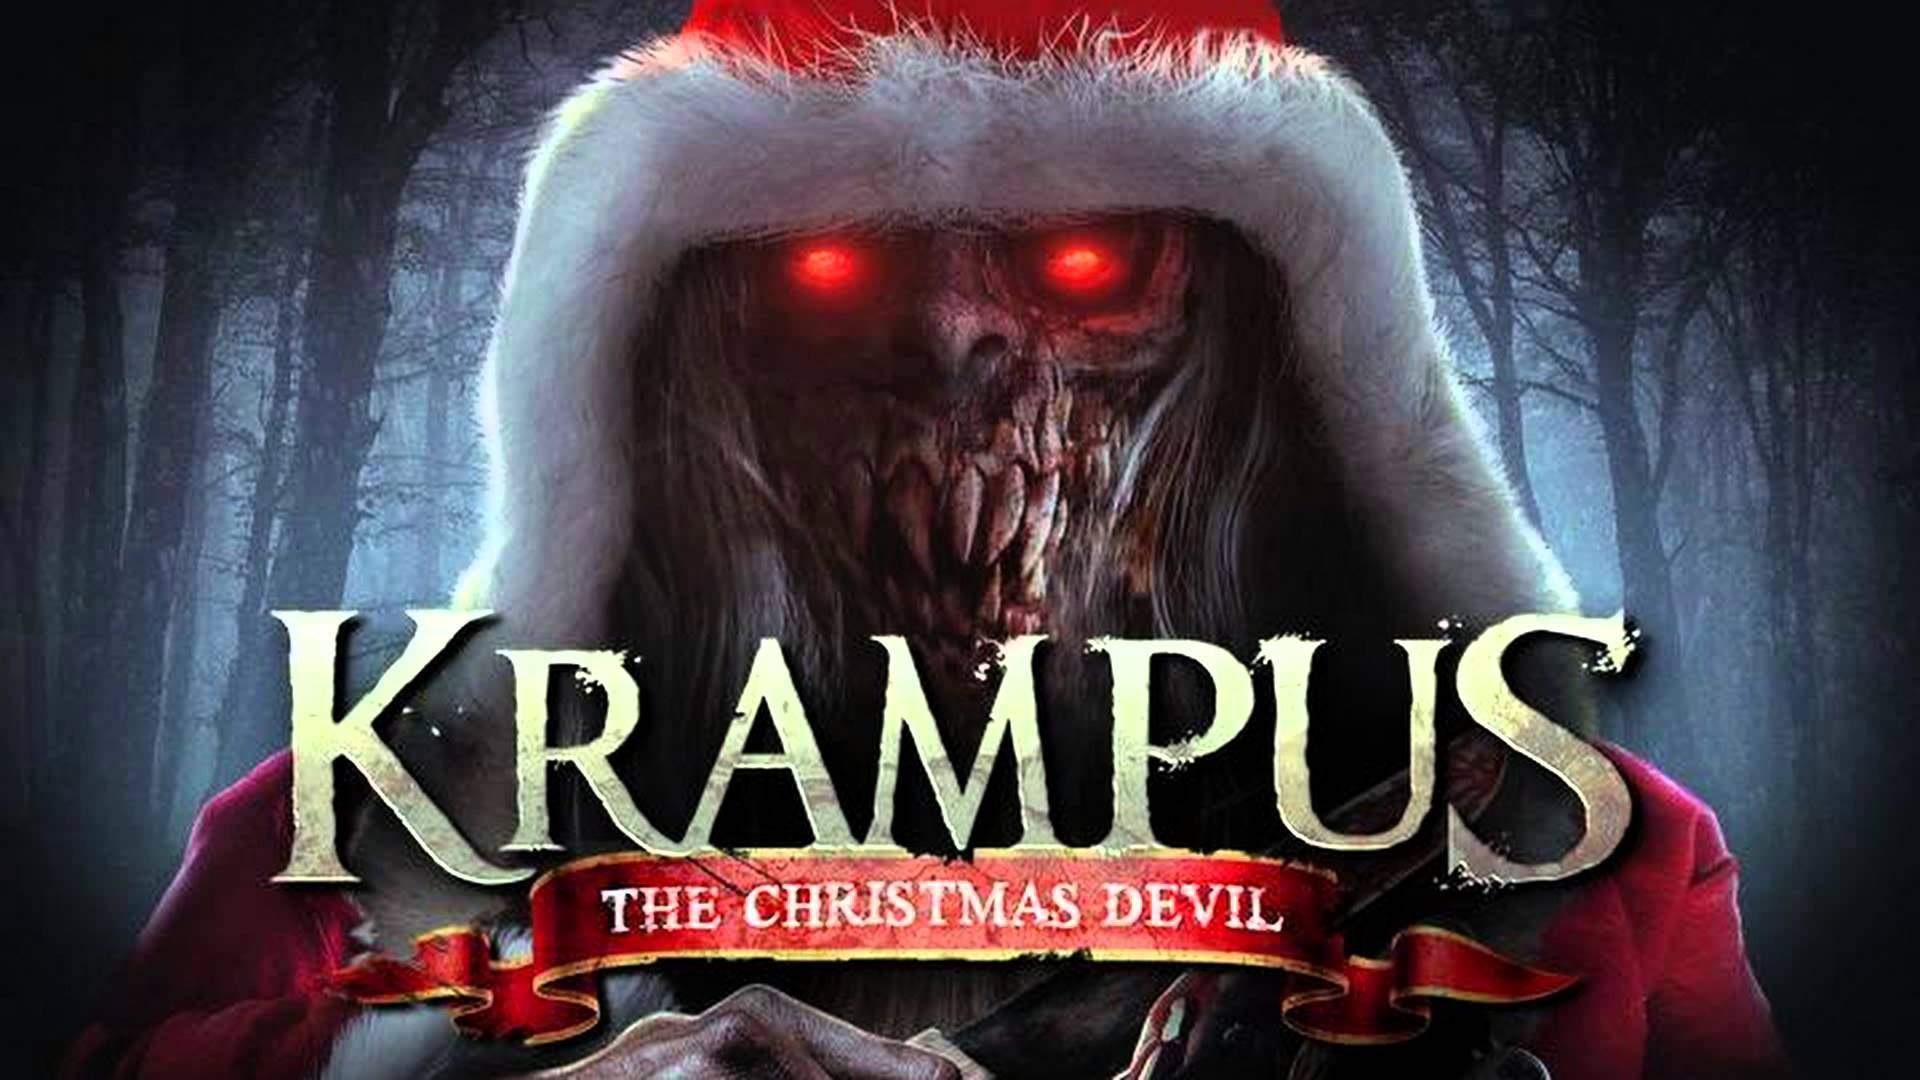 krampus movie review 2015 images